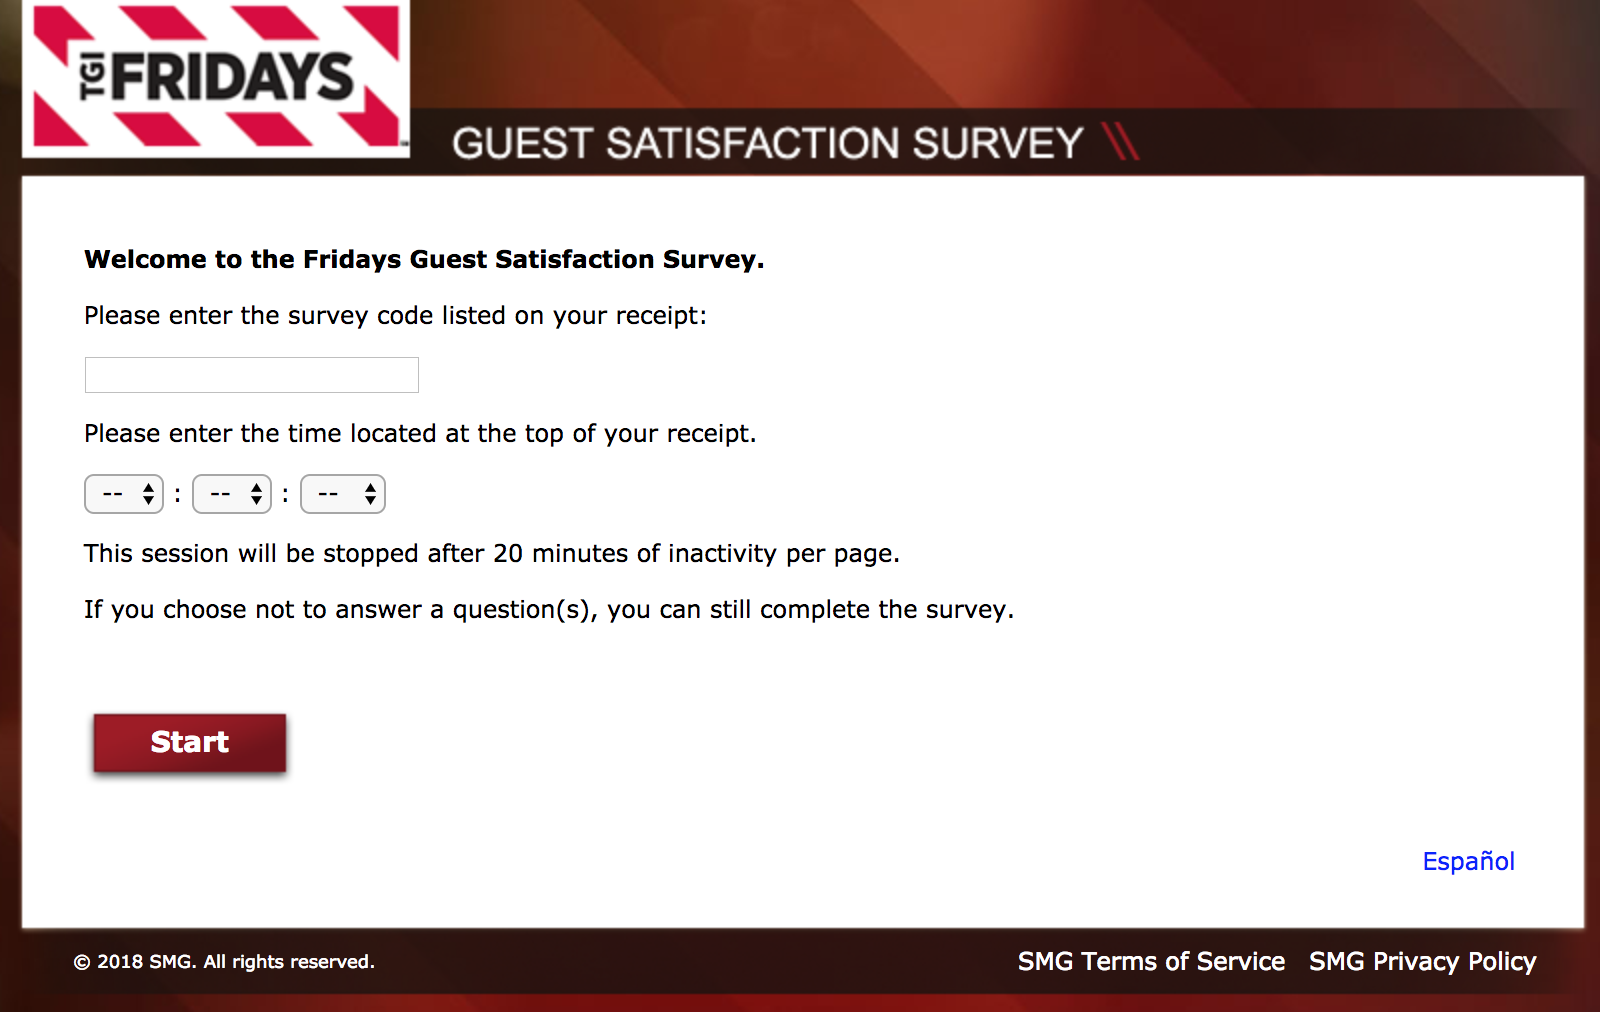 Furthermore, you should have a TGI Friday's receipt on which you can see your survey code, which is the key to participate in the survey. Moreover, you need to buy something from their stores to participate in TGI Friday's Guest Satisfaction Survey.